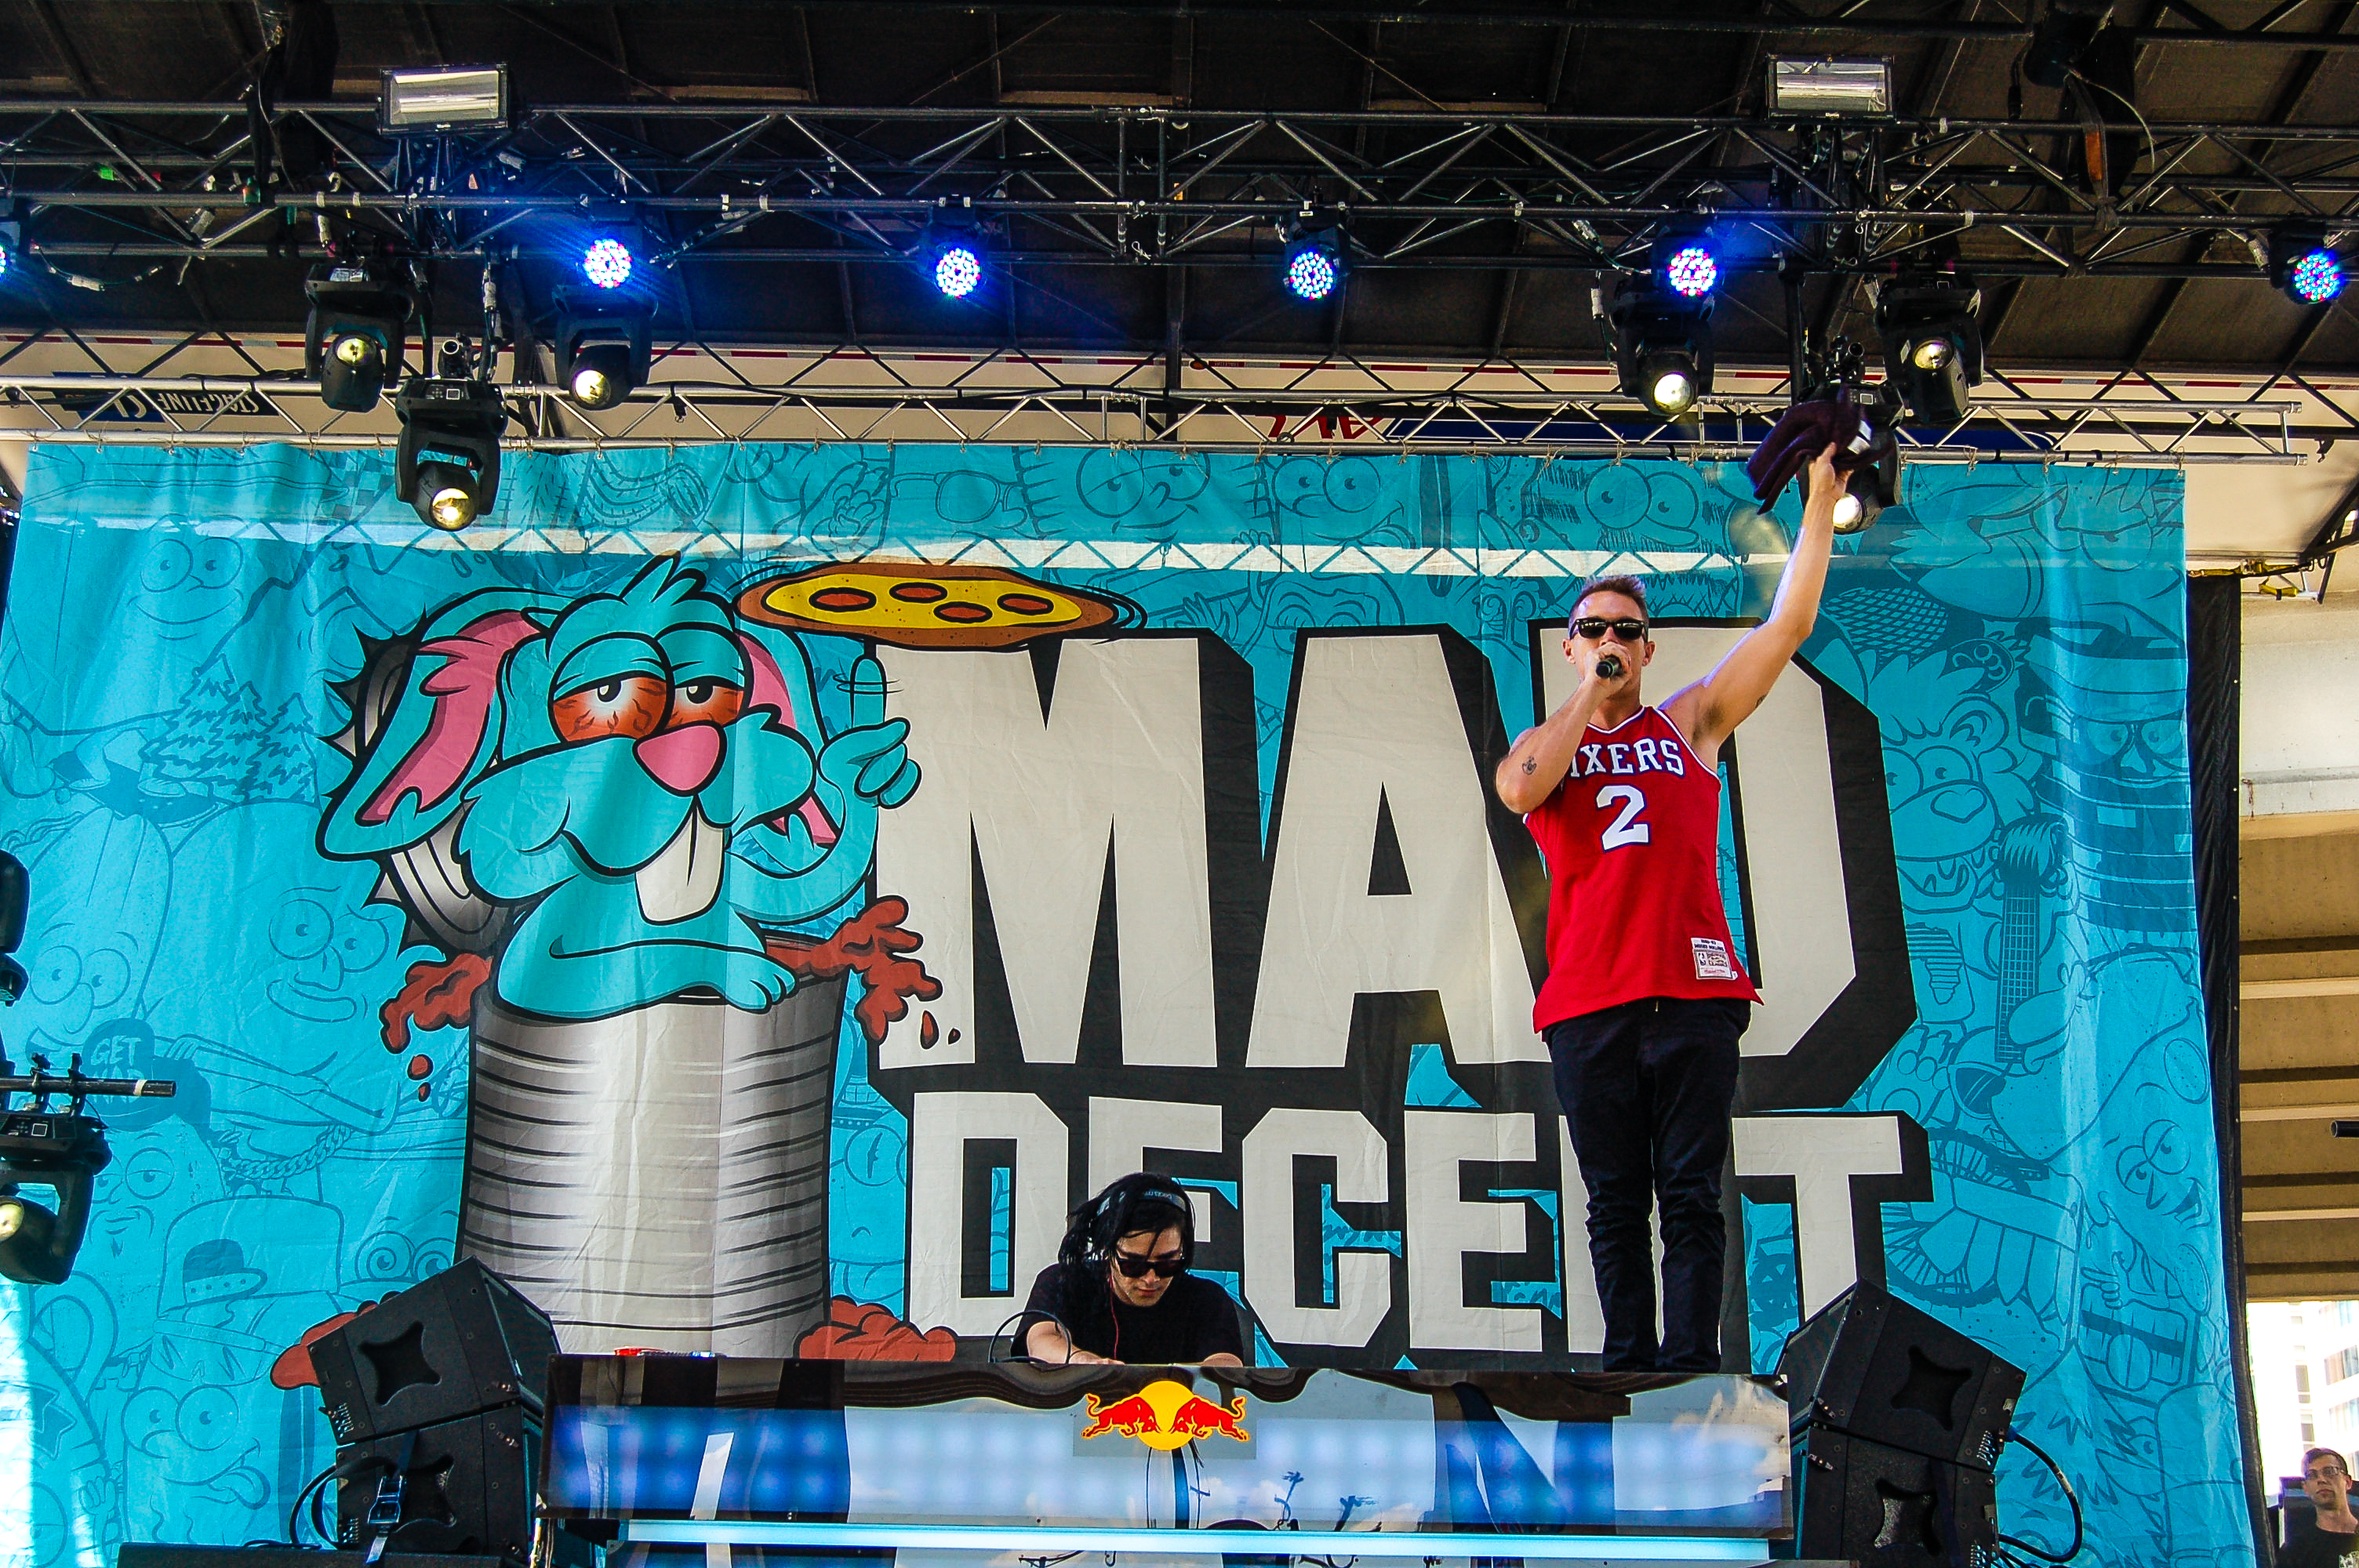 Jack U-Skrillex-Diplo at Mad Decent Block Party Dallas